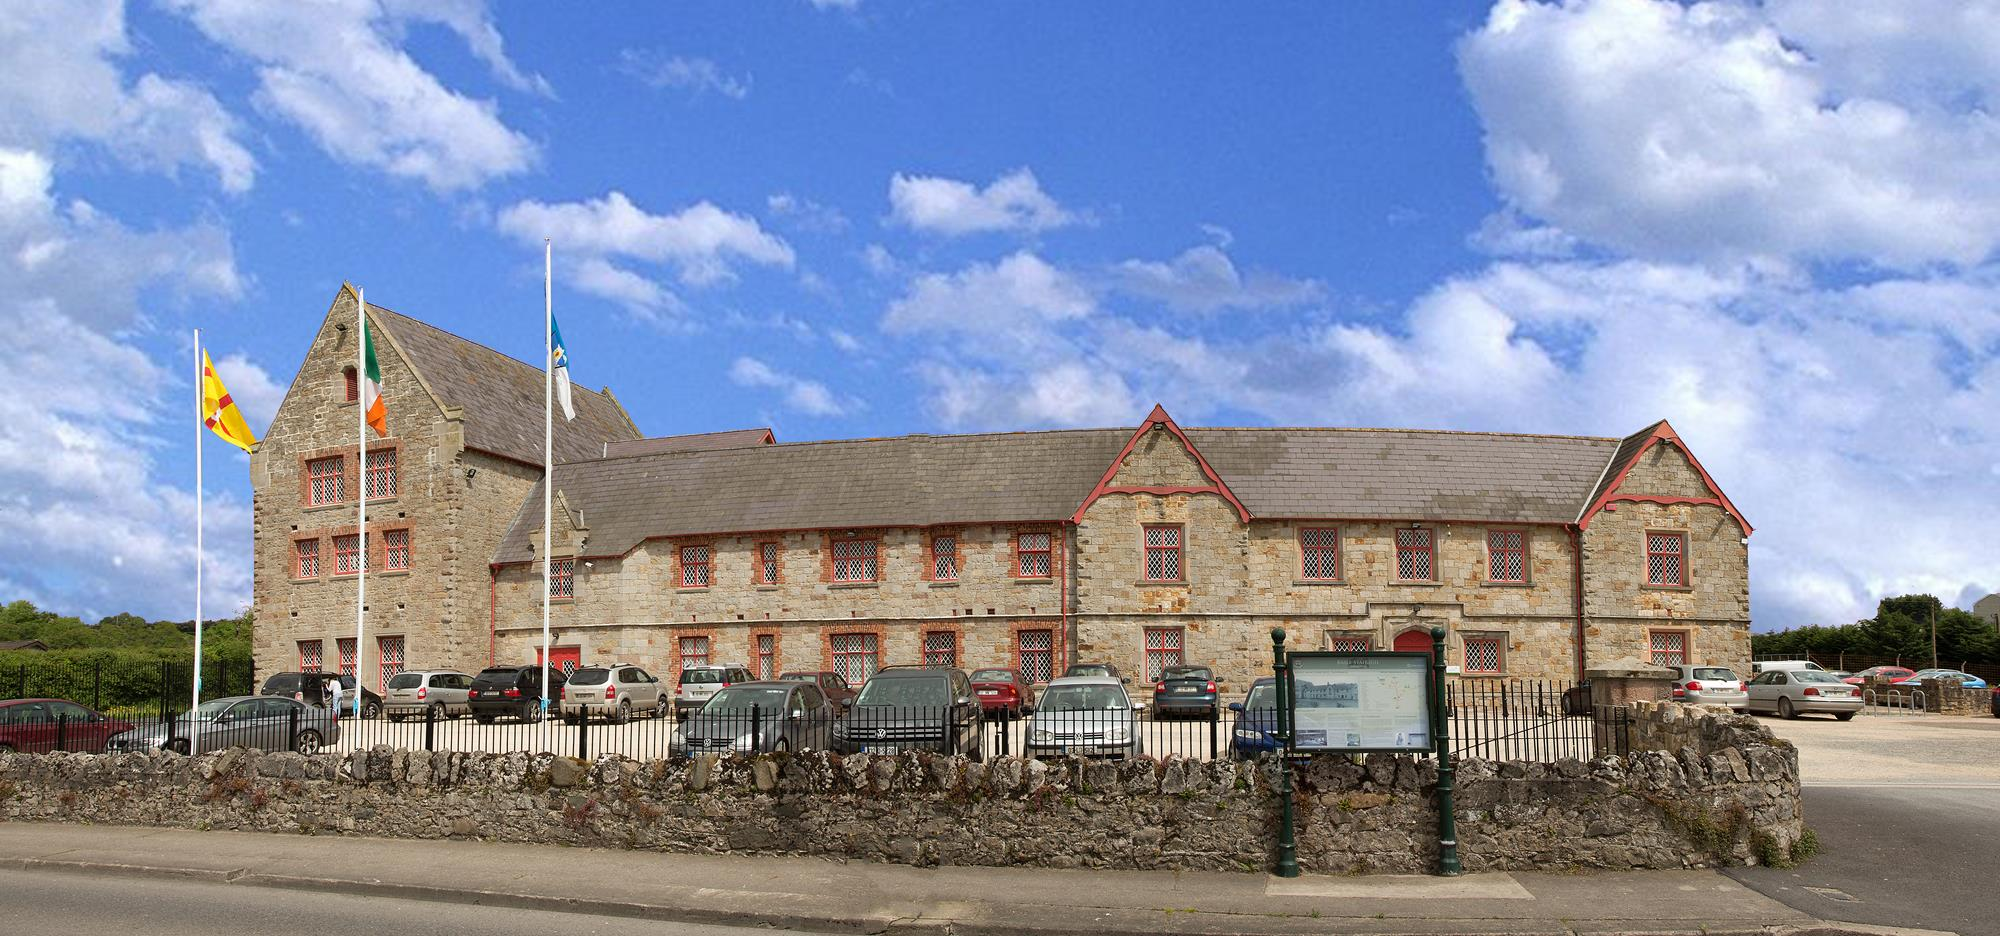 Carrickmacross Workhouse